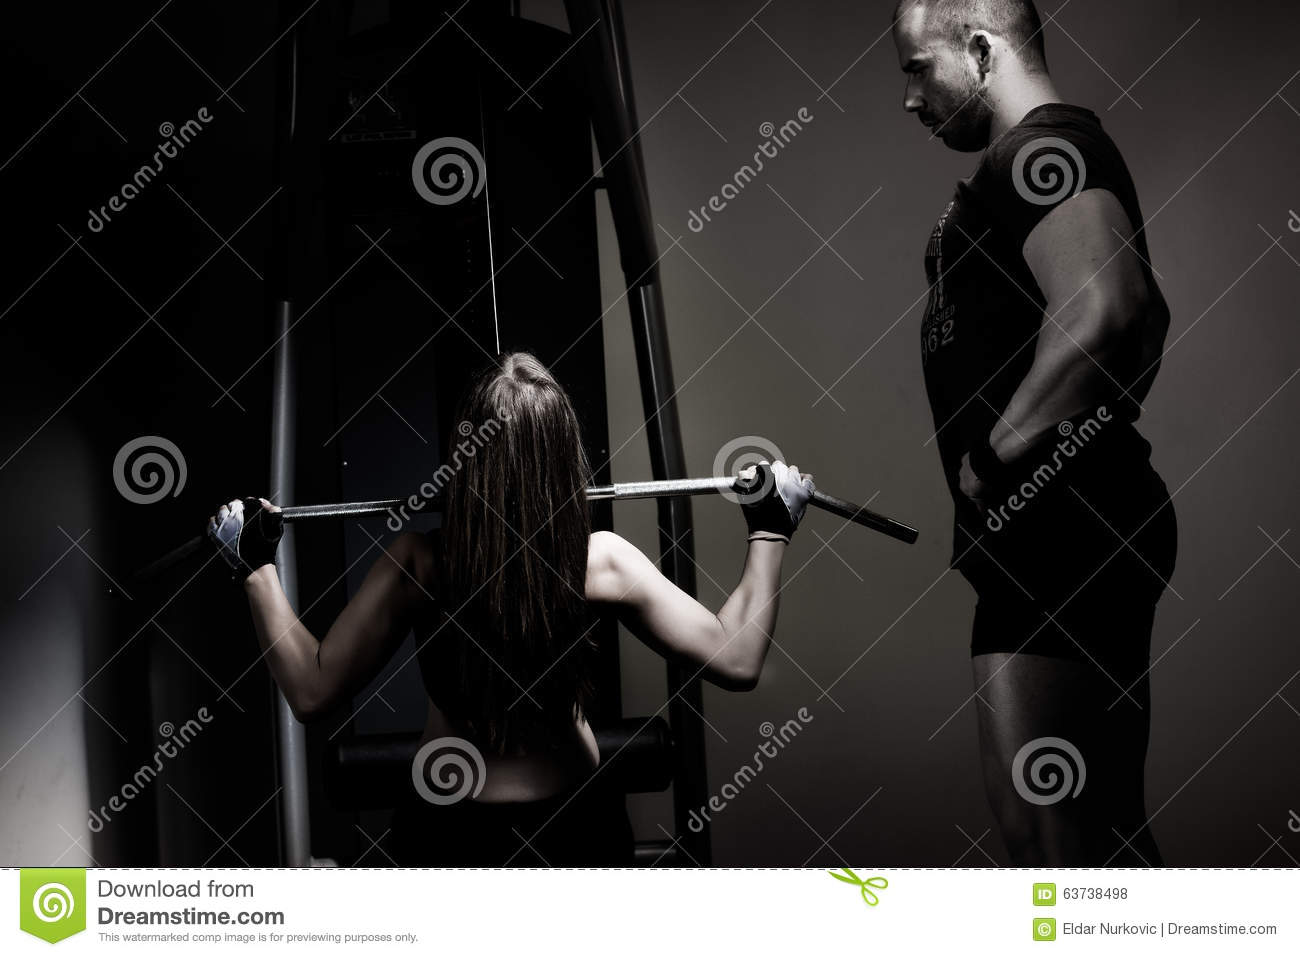 Woman weight training at gym.Exercising on pull down weight machine/